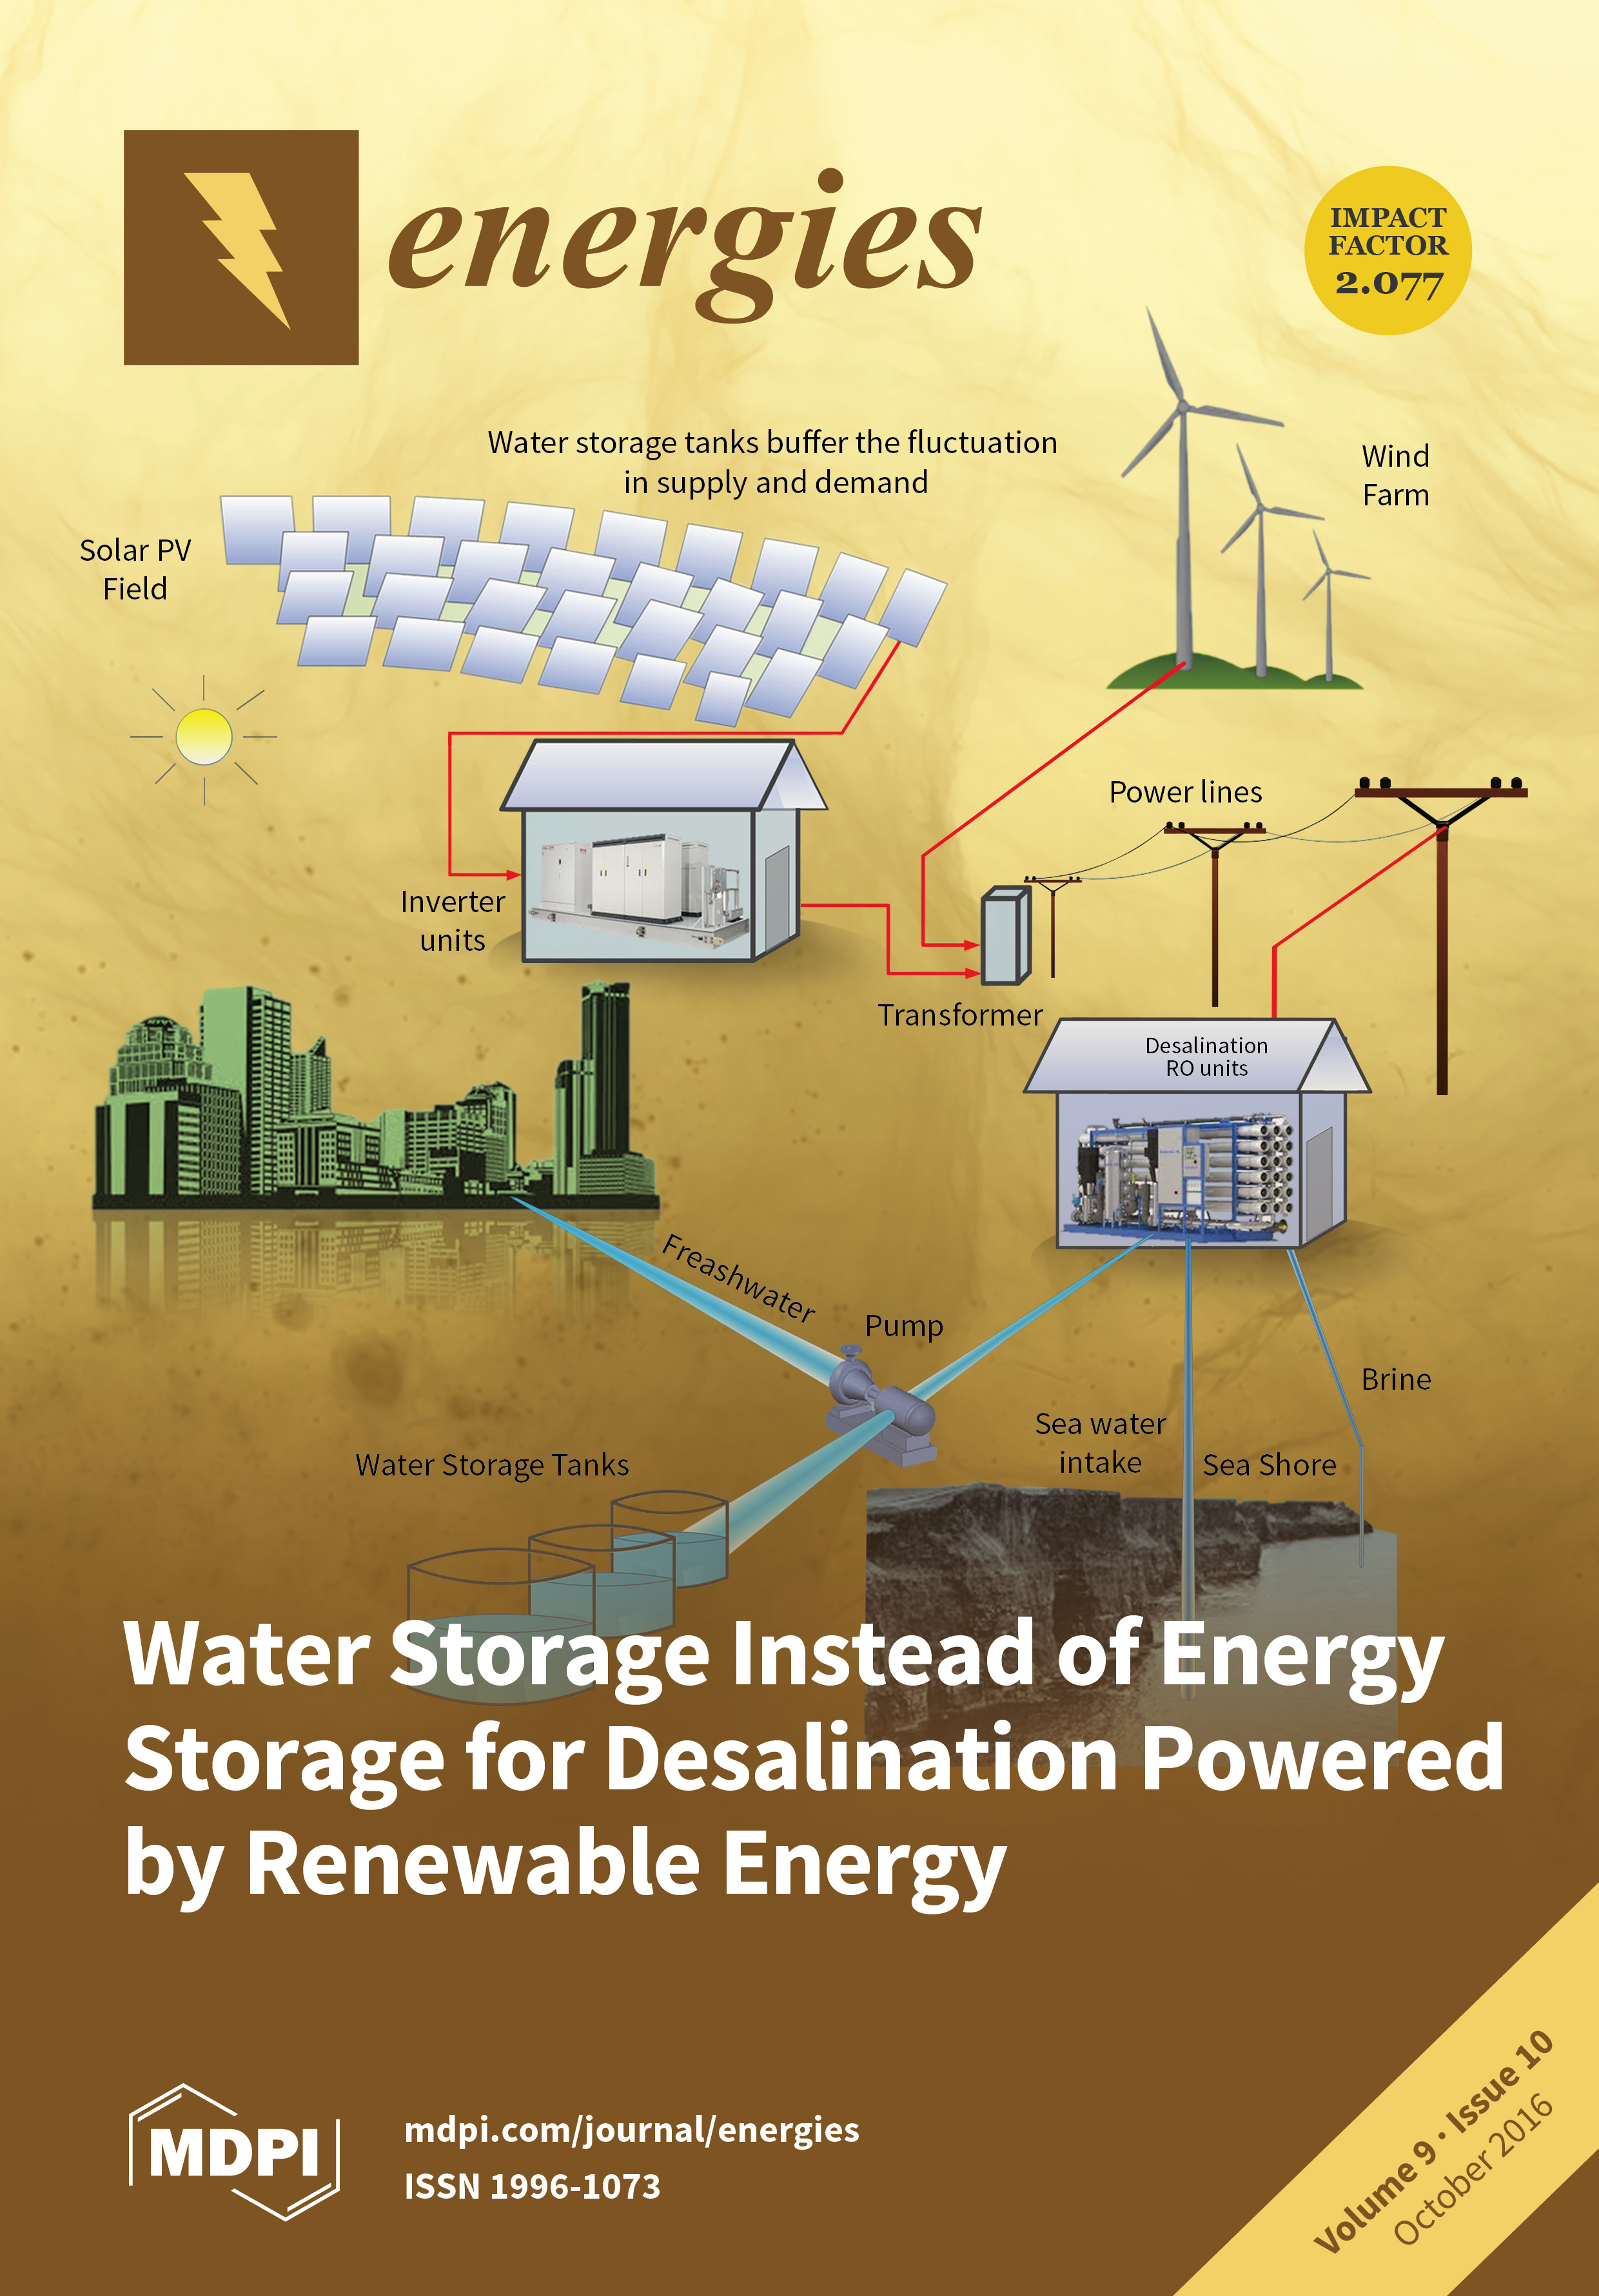 Energies October 2016 Browse Articles Nonisolated Power Supply Design Eeweb Integrations Tech In This Study We Demonstrate That Energy Storage For Desalination Powered By Renewable Is